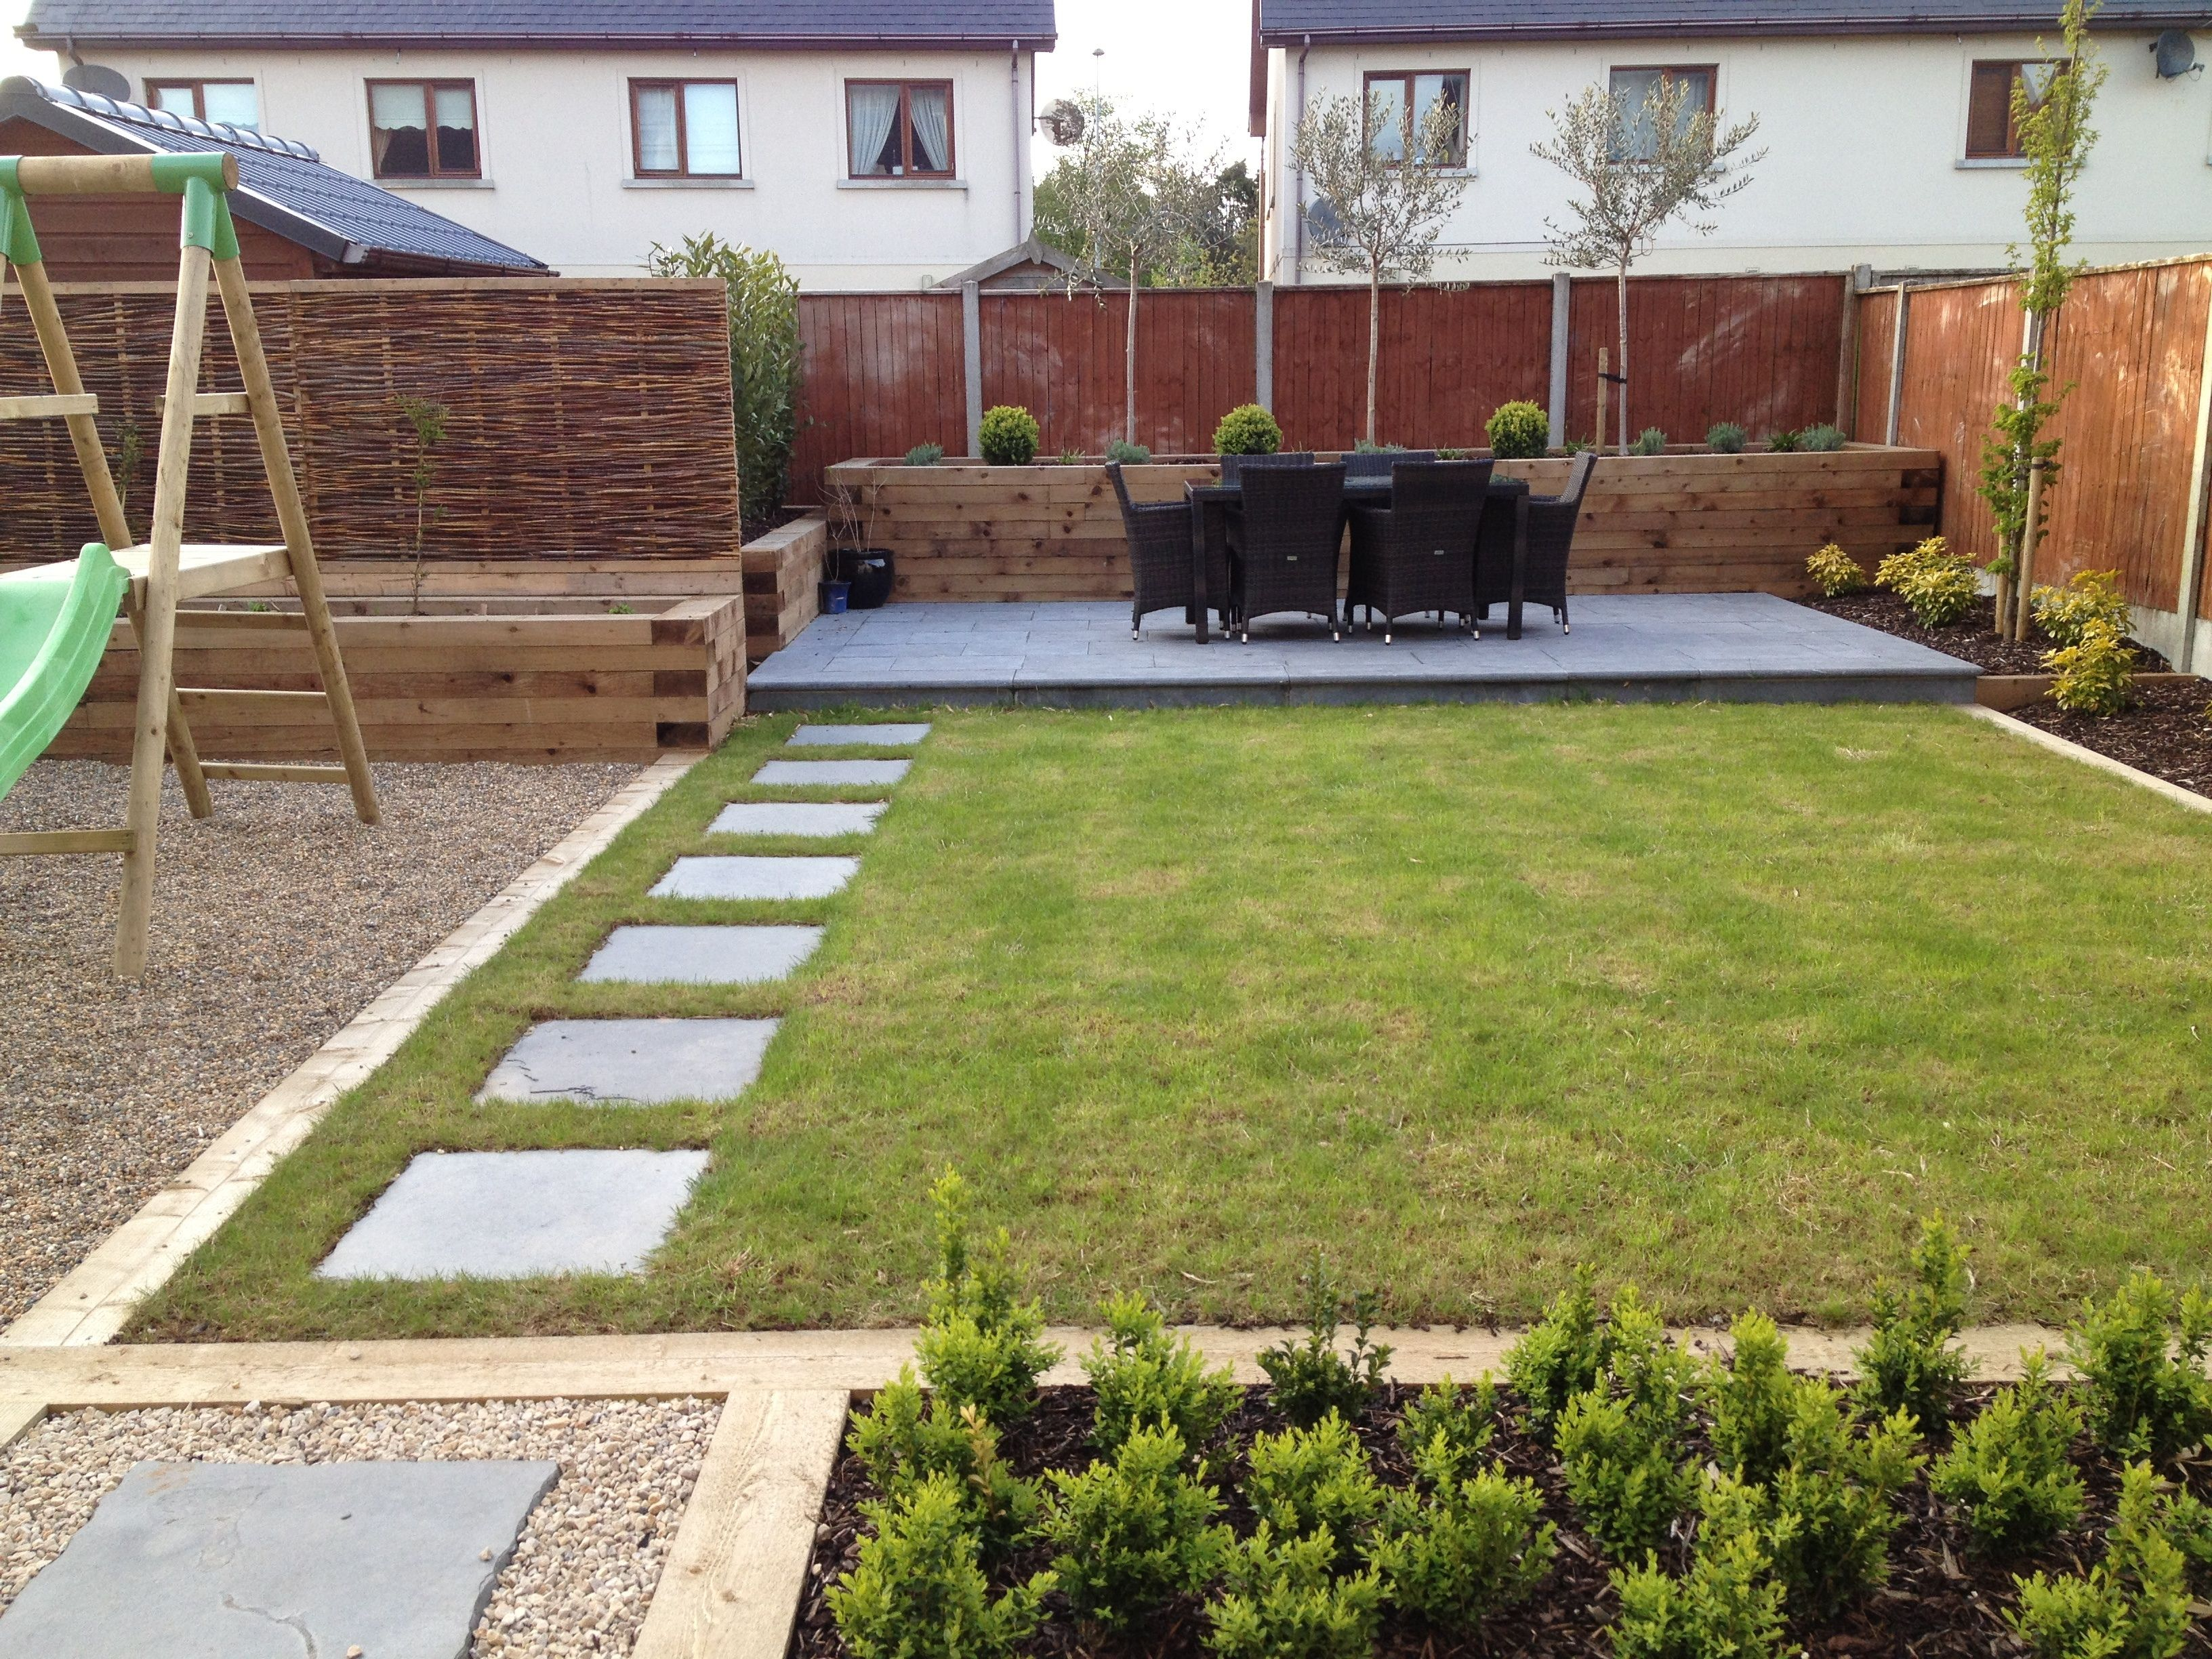 Good Family Garden And Landscaping. Low Maintenance #family #lawn #landscaping